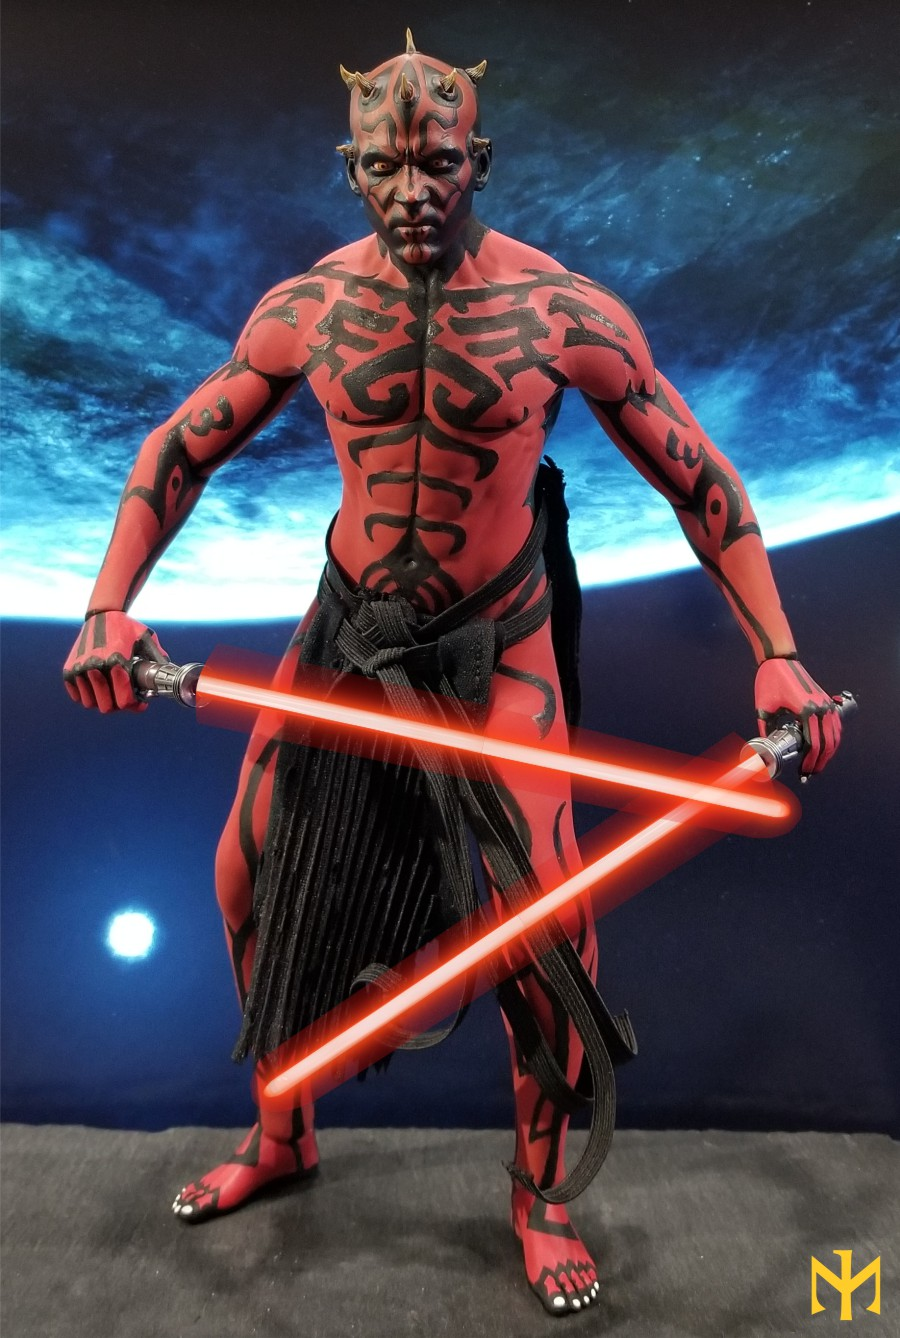 STAR WARS Updated Darth Maul Custom Part IV Maul 2.0 (photo heavy) Swdmt221